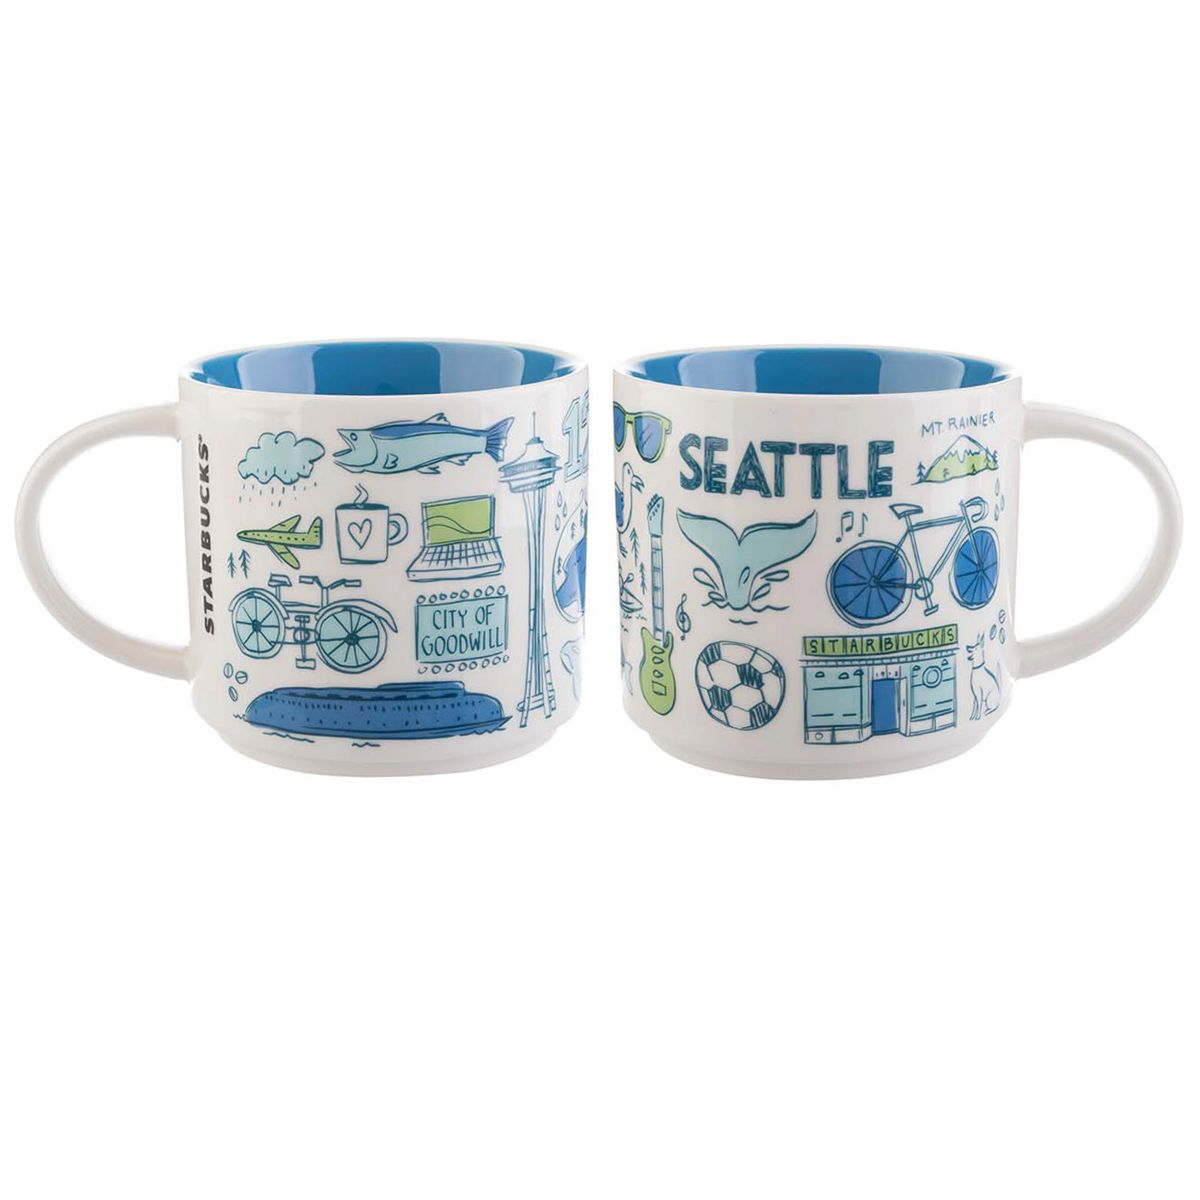 Seattle Mug Collectible Been — A The From Starbucks There WHeE2ID9Yb